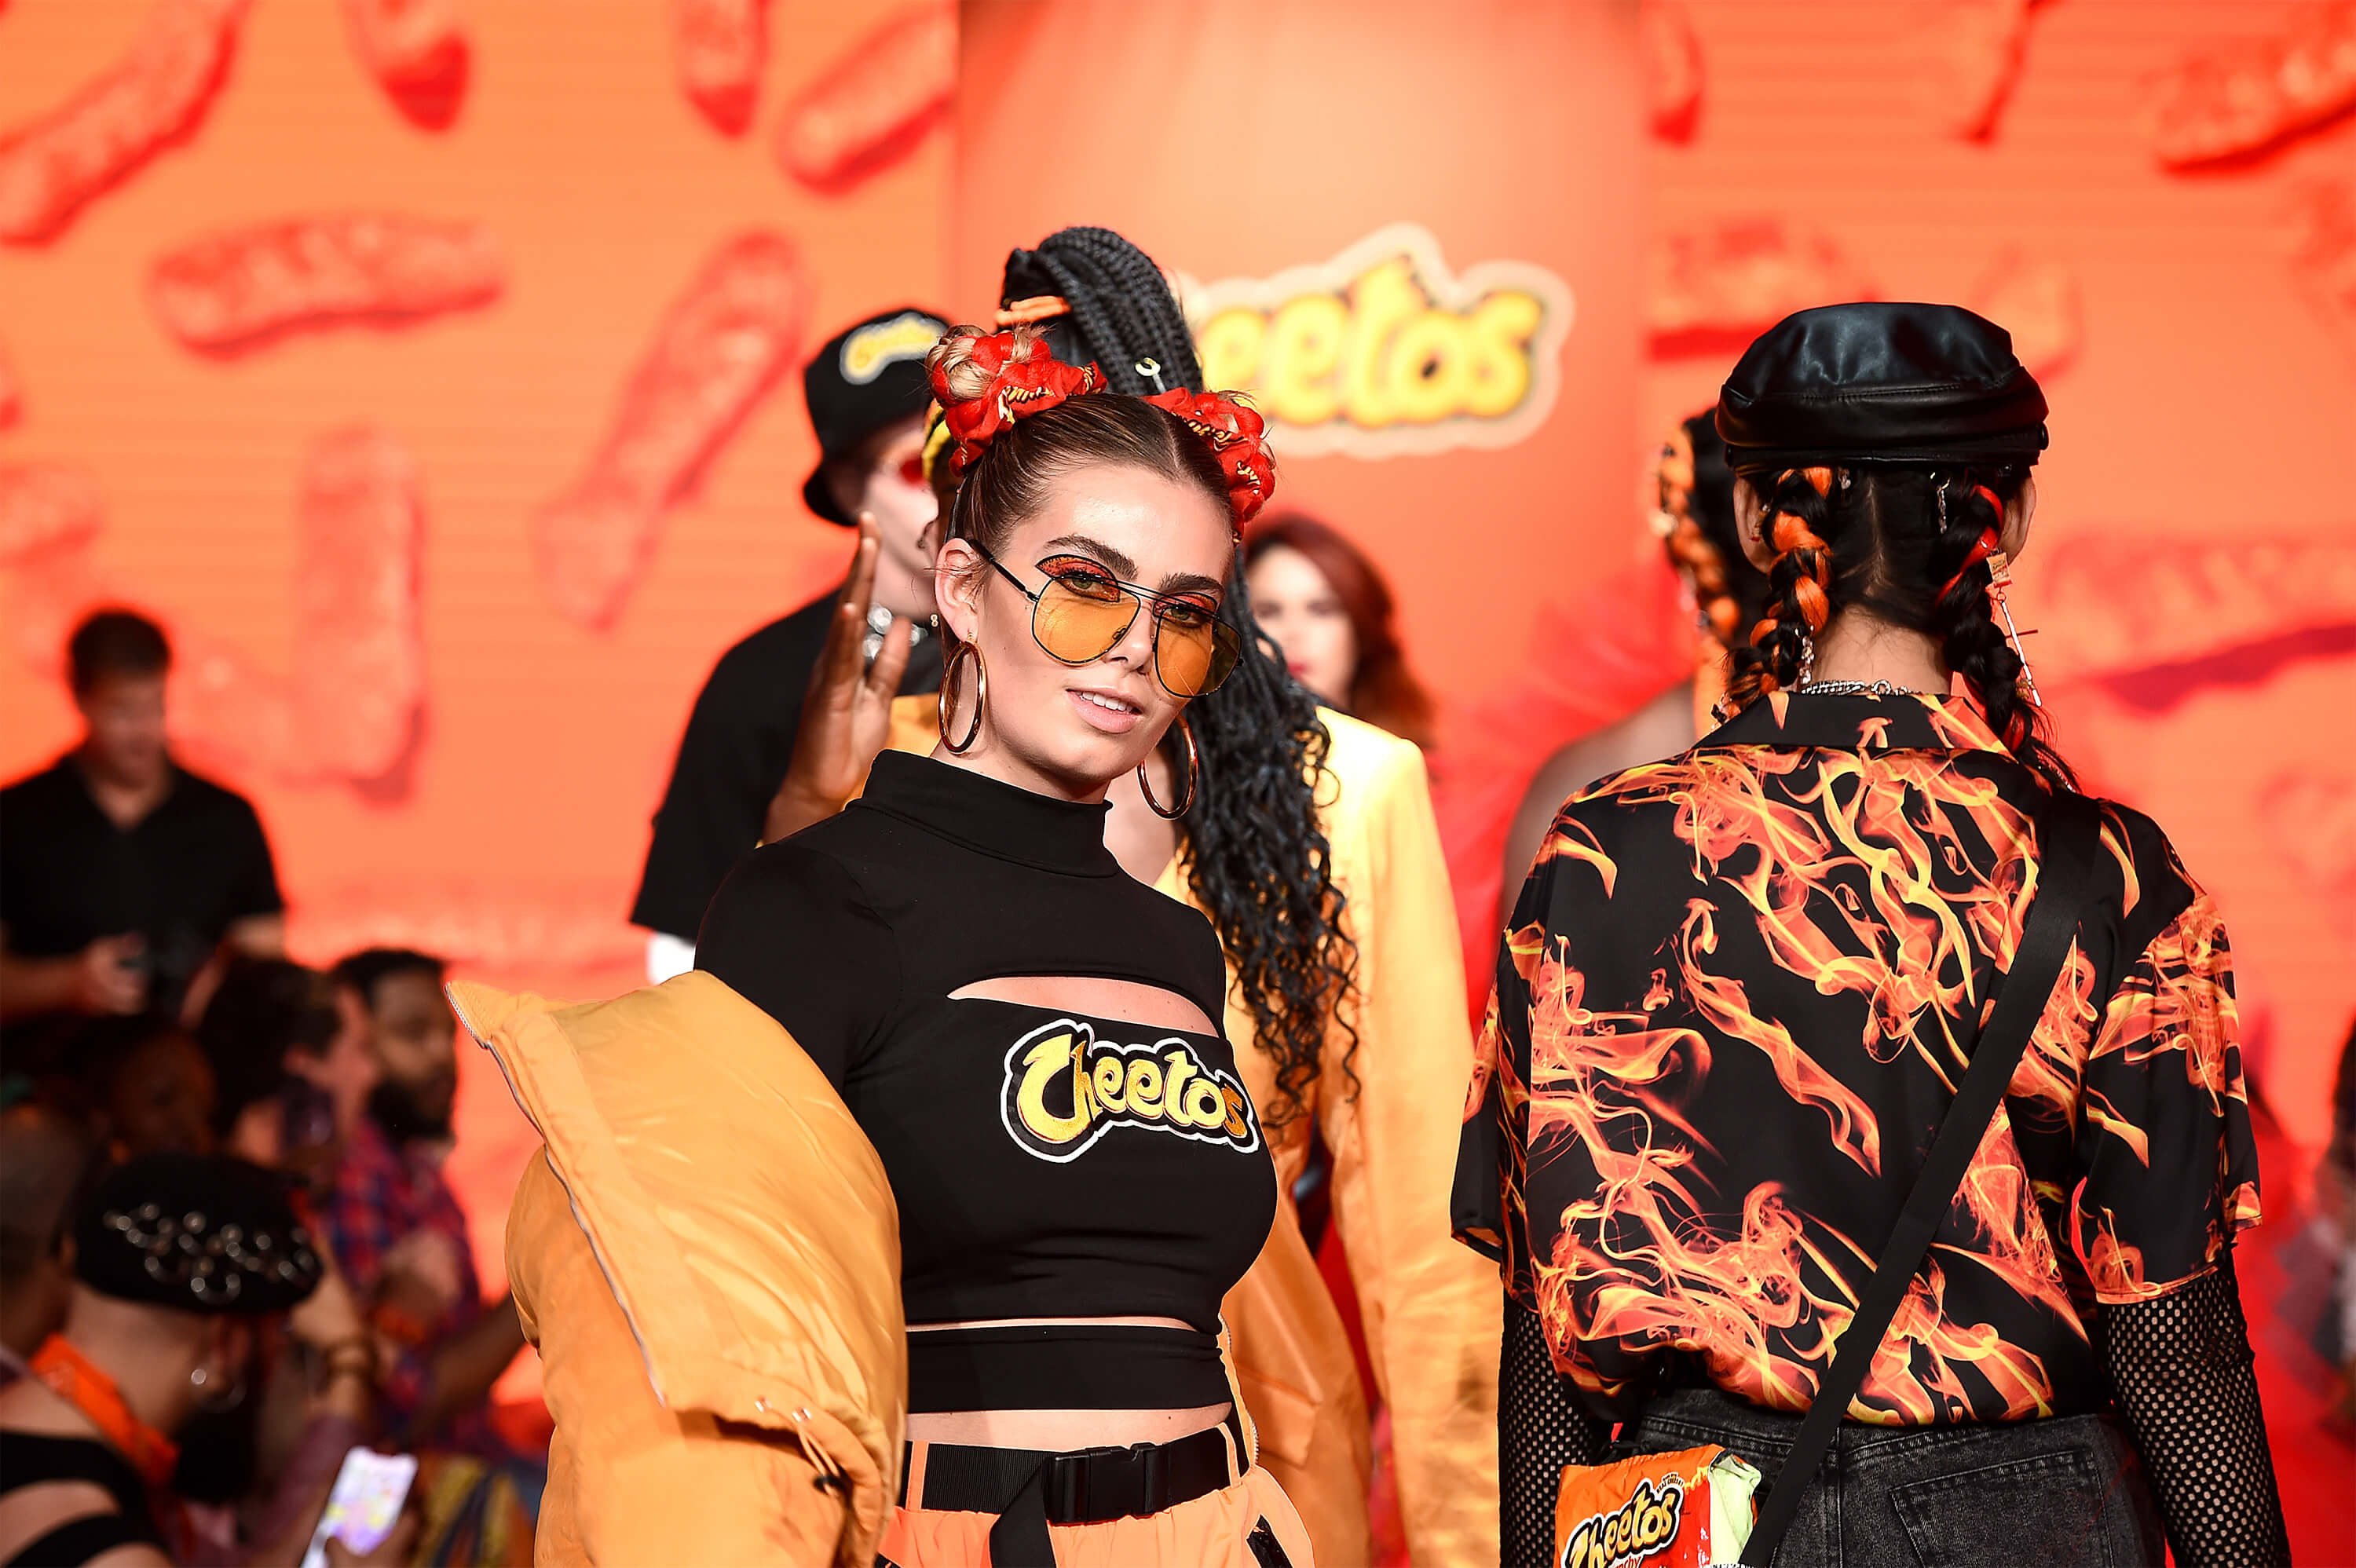 Cheetos and TMA turned up the heat during New York Fashion Week with the House of Flamin' Haute Runway Show and Style Bar. From creative to experiential marketing to celebrity talent to influencer marketing and beyond, this program showcased the full spectrum of TMA's expertise.